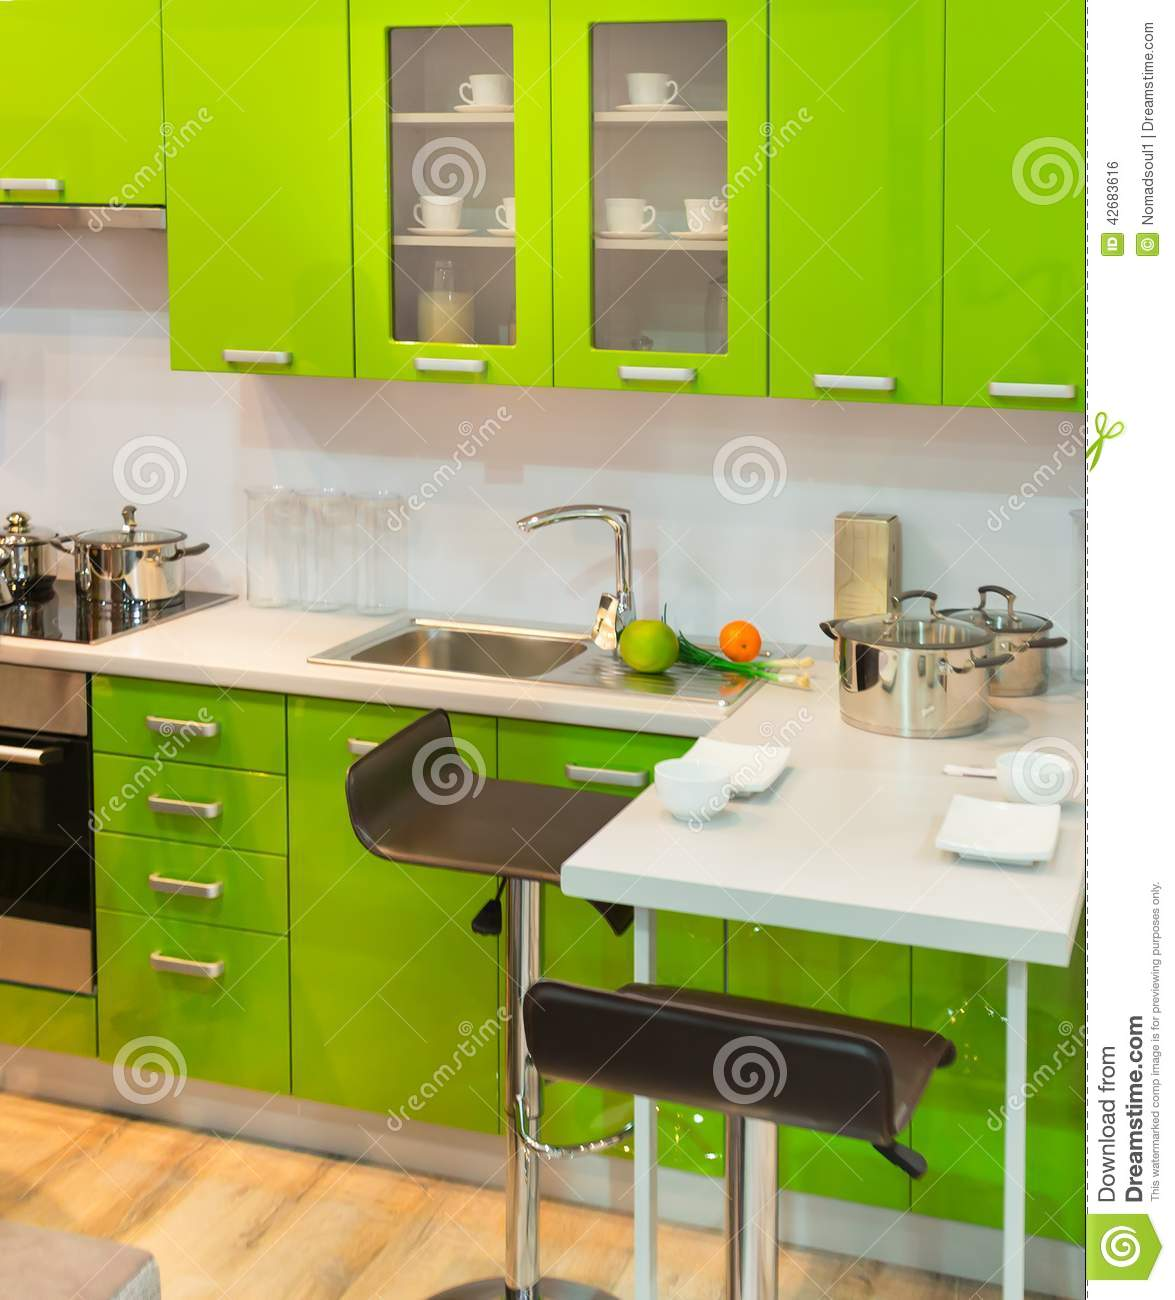 Modern green kitchen clean interior design stock photo for Clean interior design